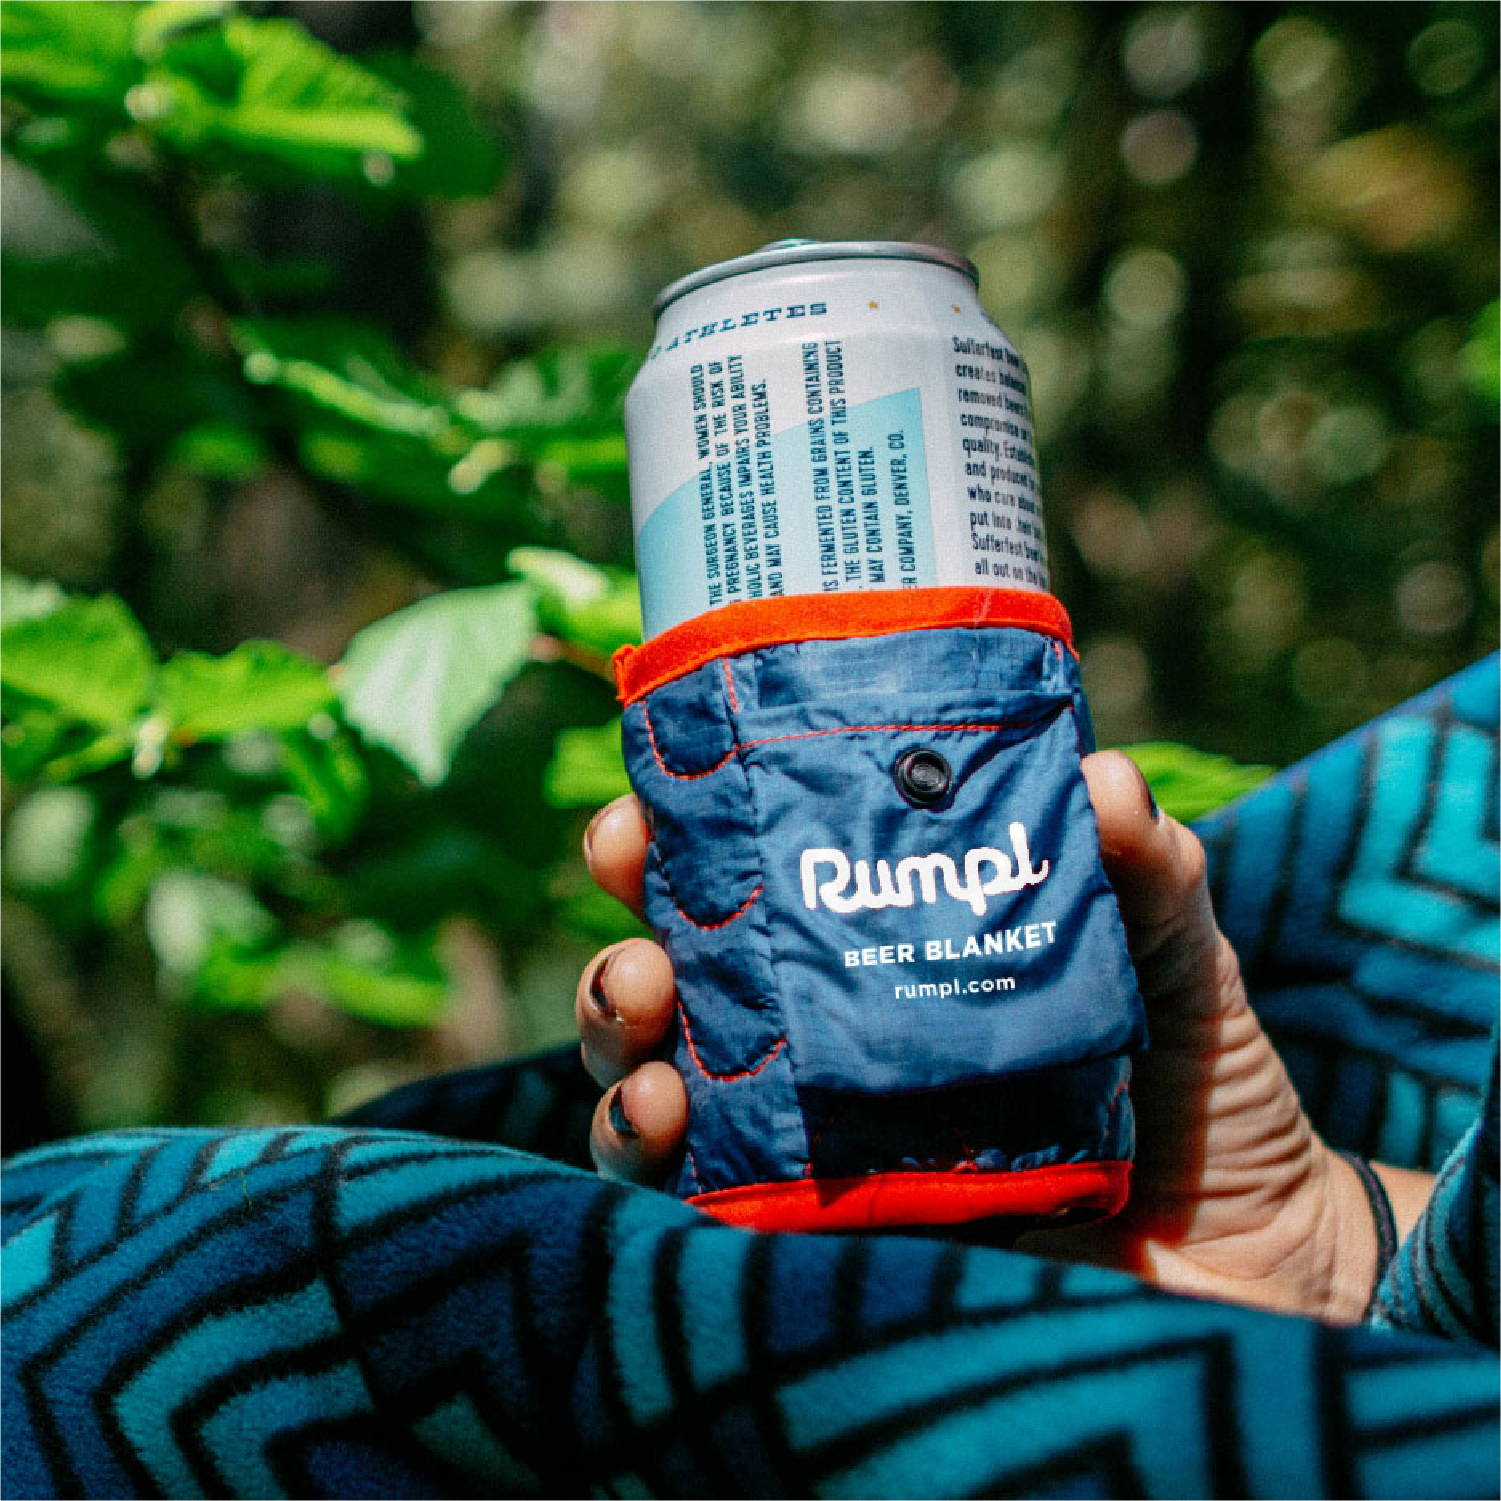 Rumpl Beer blanket the ultimate packable beer koozie